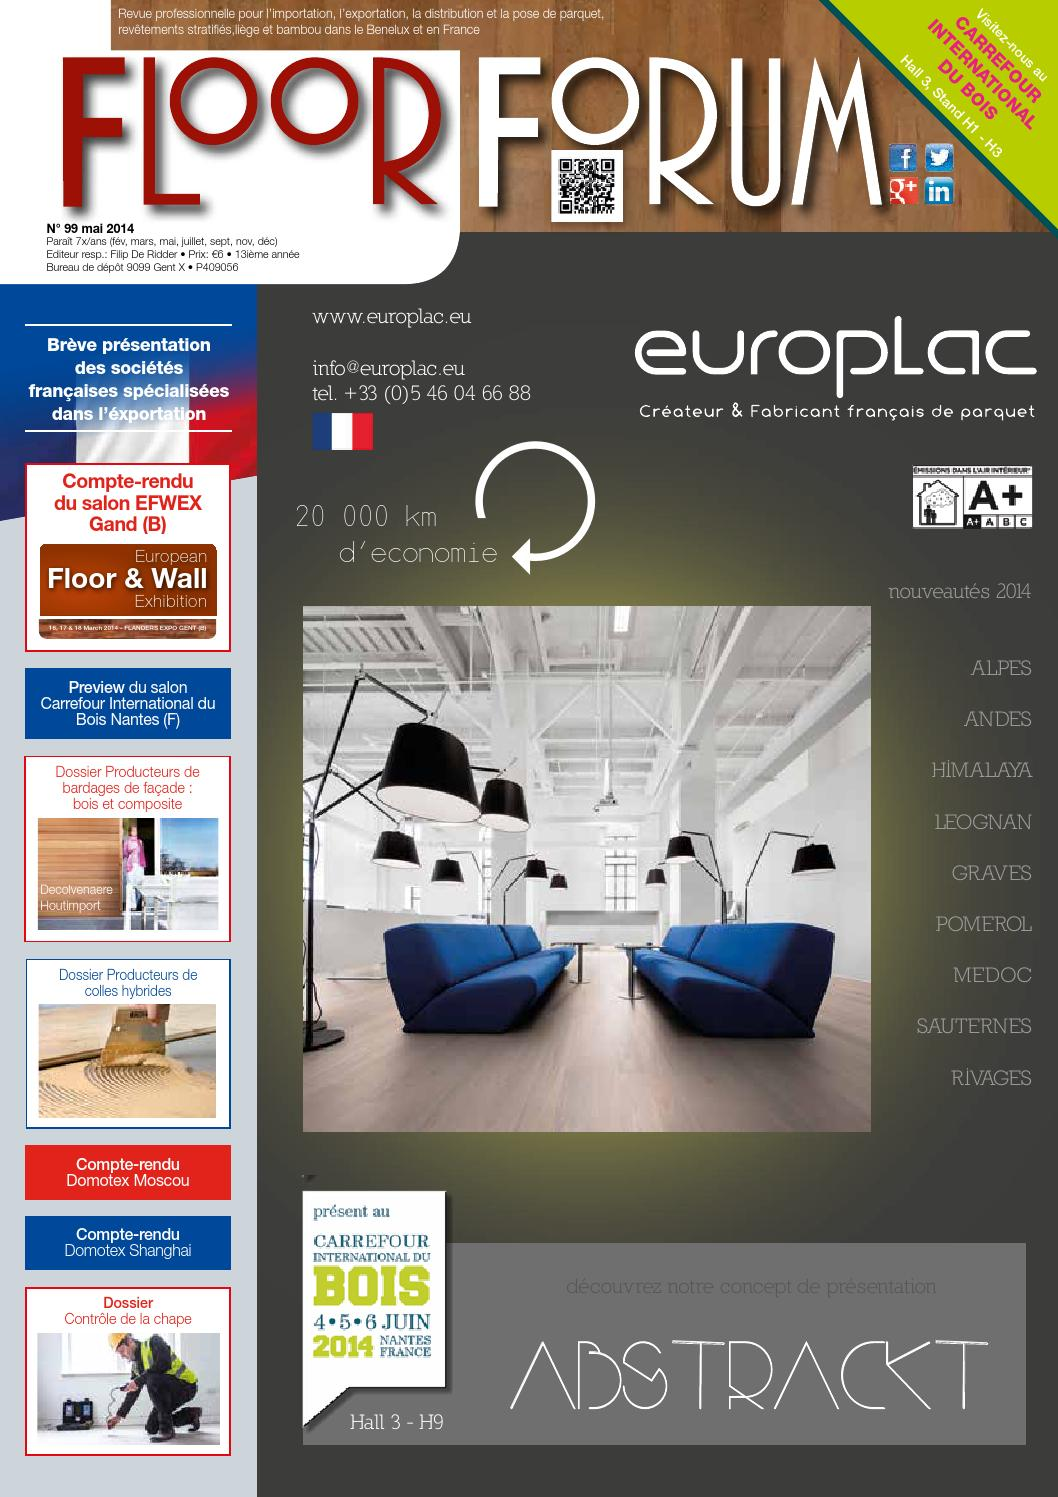 Terrasse Composite Neolife Ff 99 Mai 2014 By Media Pact Nv Ffi Bvba Issuu